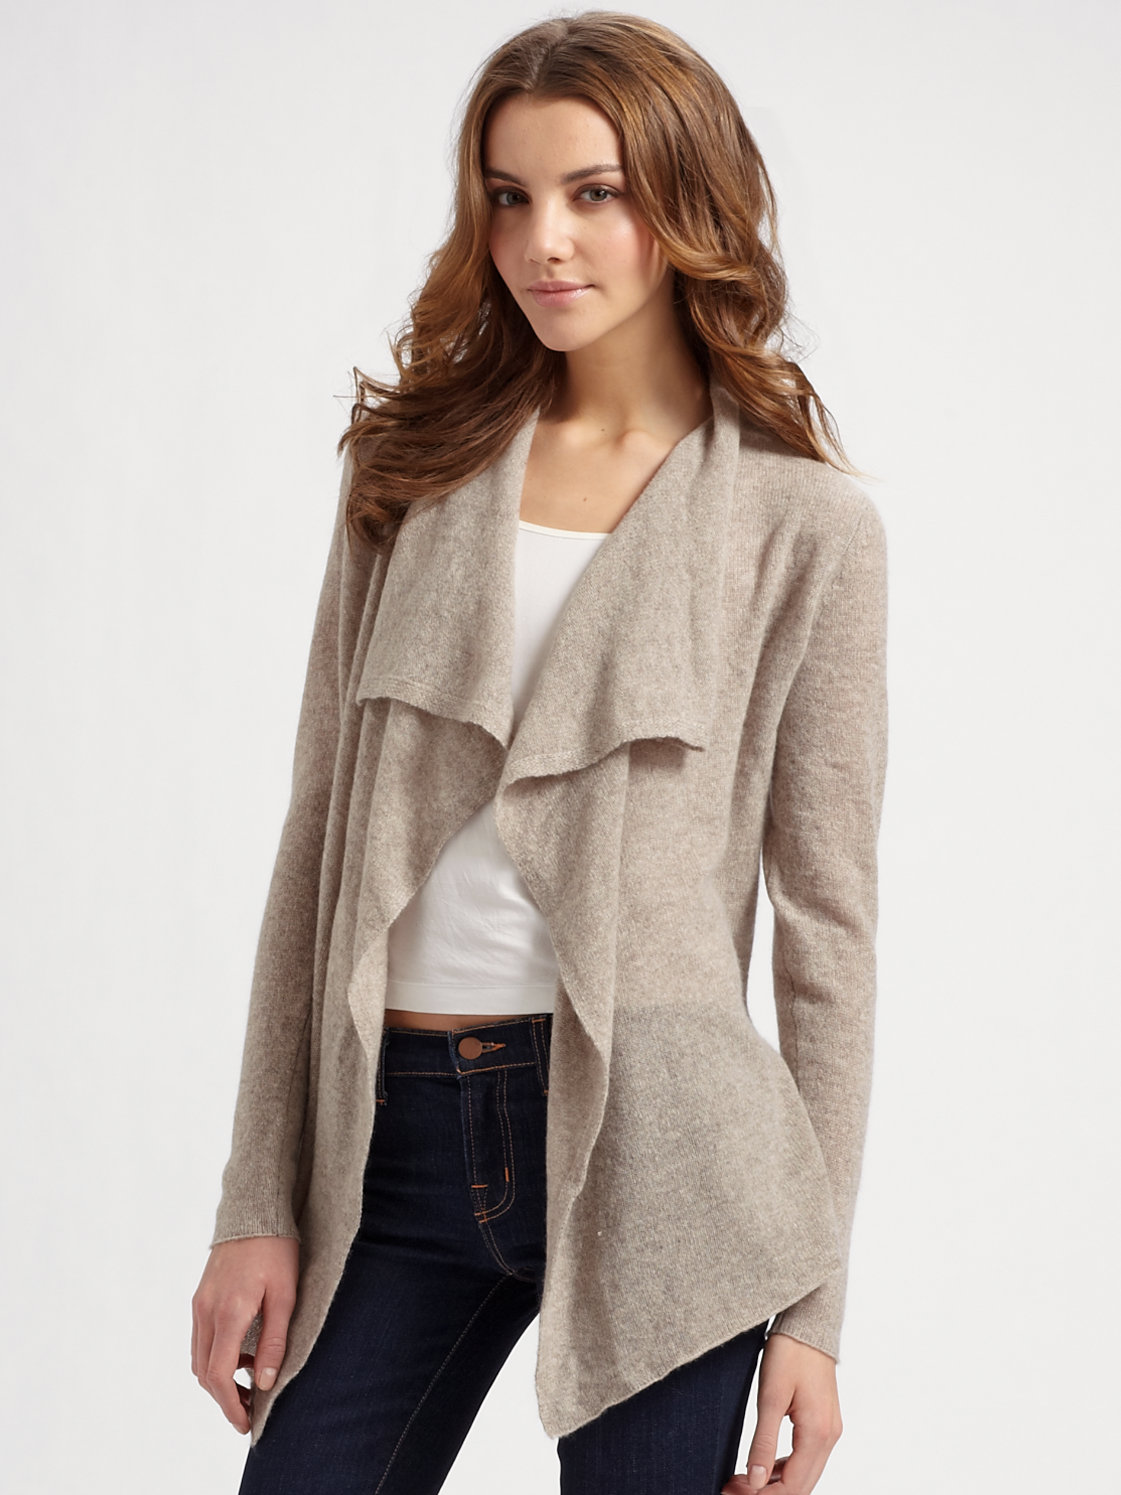 White   warren Cashmere Open Front Sweater in Natural | Lyst